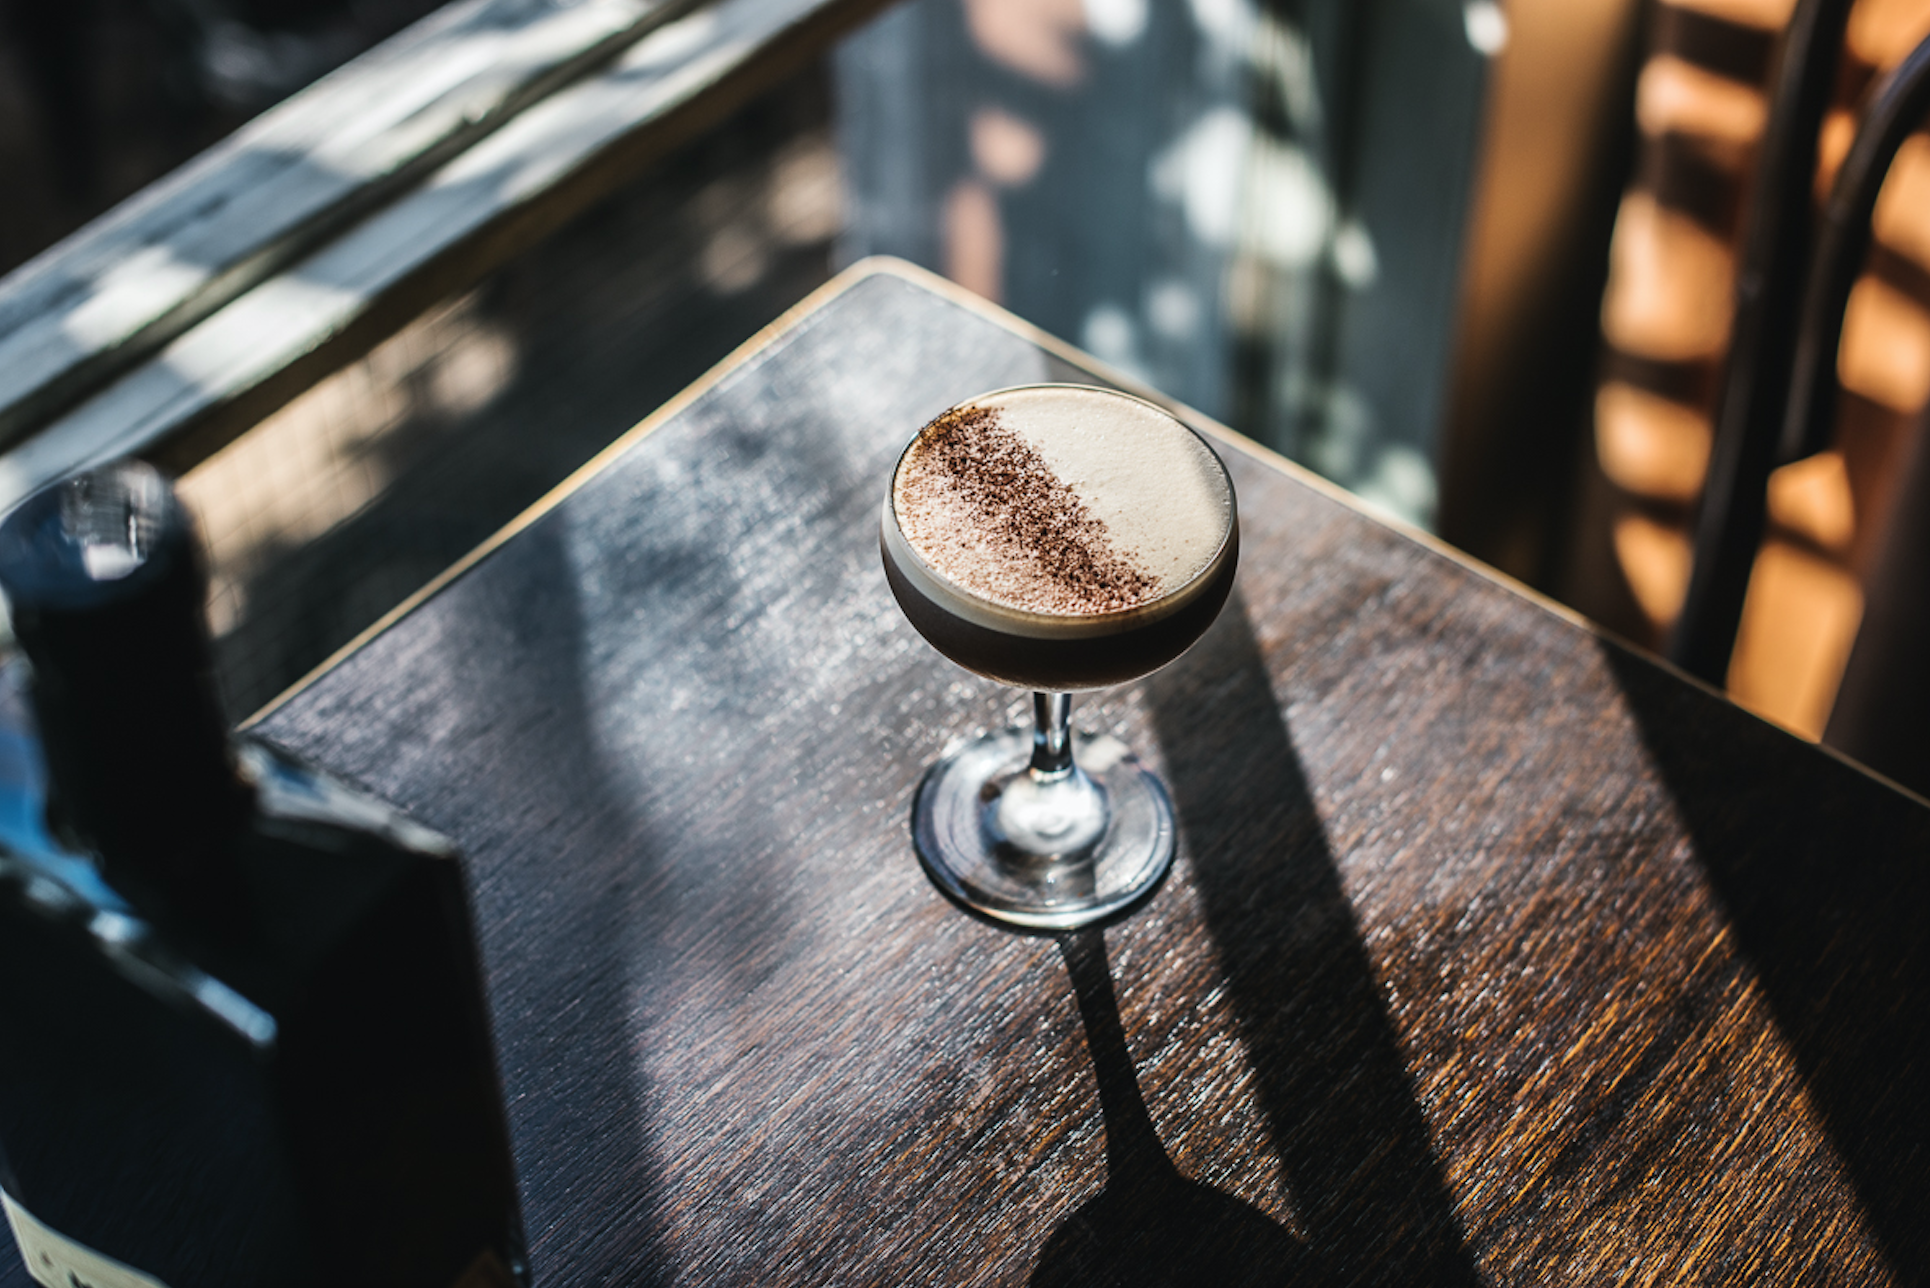 THE WORLD'S FIRST FESTIVAL OF THE ESPRESSO MARTINI